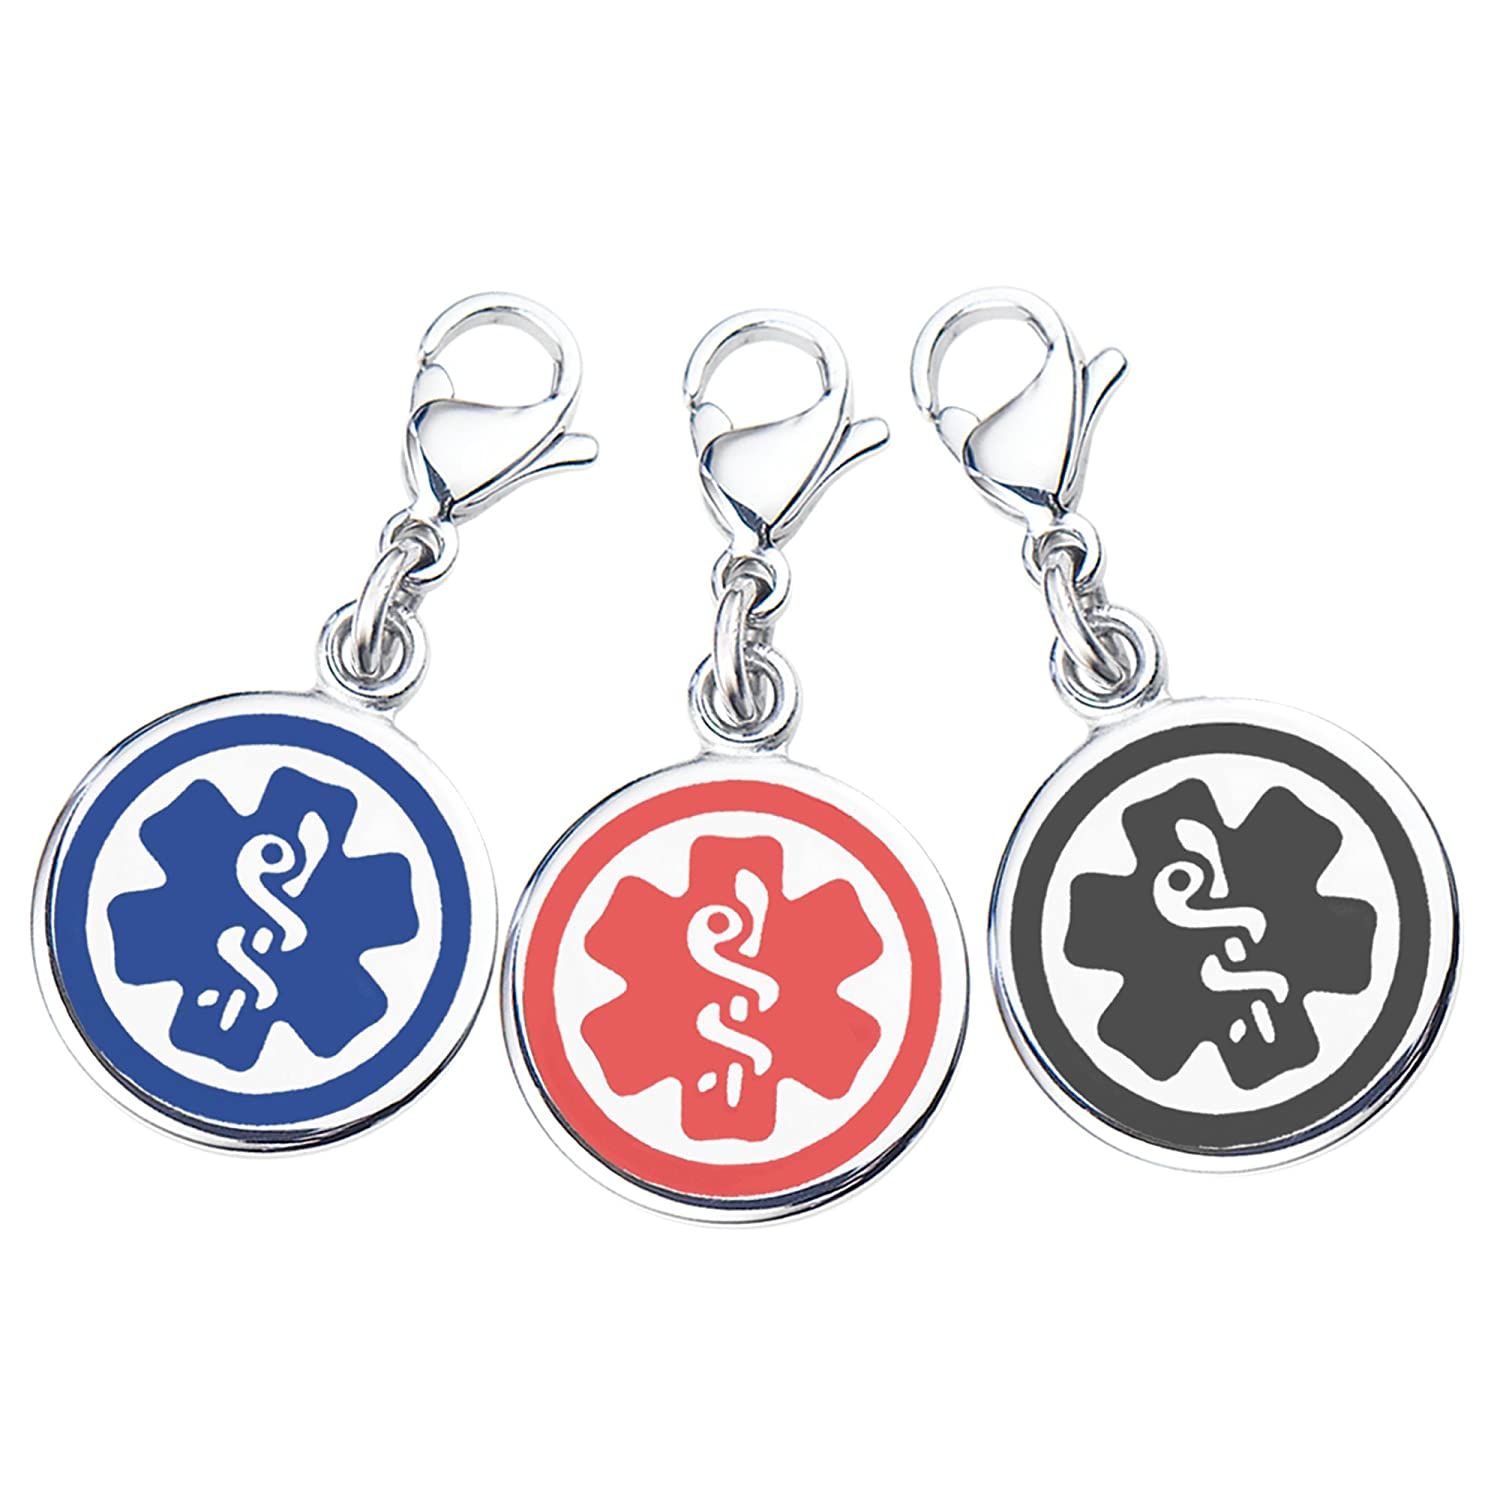 Mix N Match 3/8 (10mm) 316L Double-Sided Medical Alert ID Charms-3 Pack, Free Medical ID Cards, Medcial Alert Apps Medcial Alert Apps -Blue Black & Red Divoti Inc. 9930PCK-A